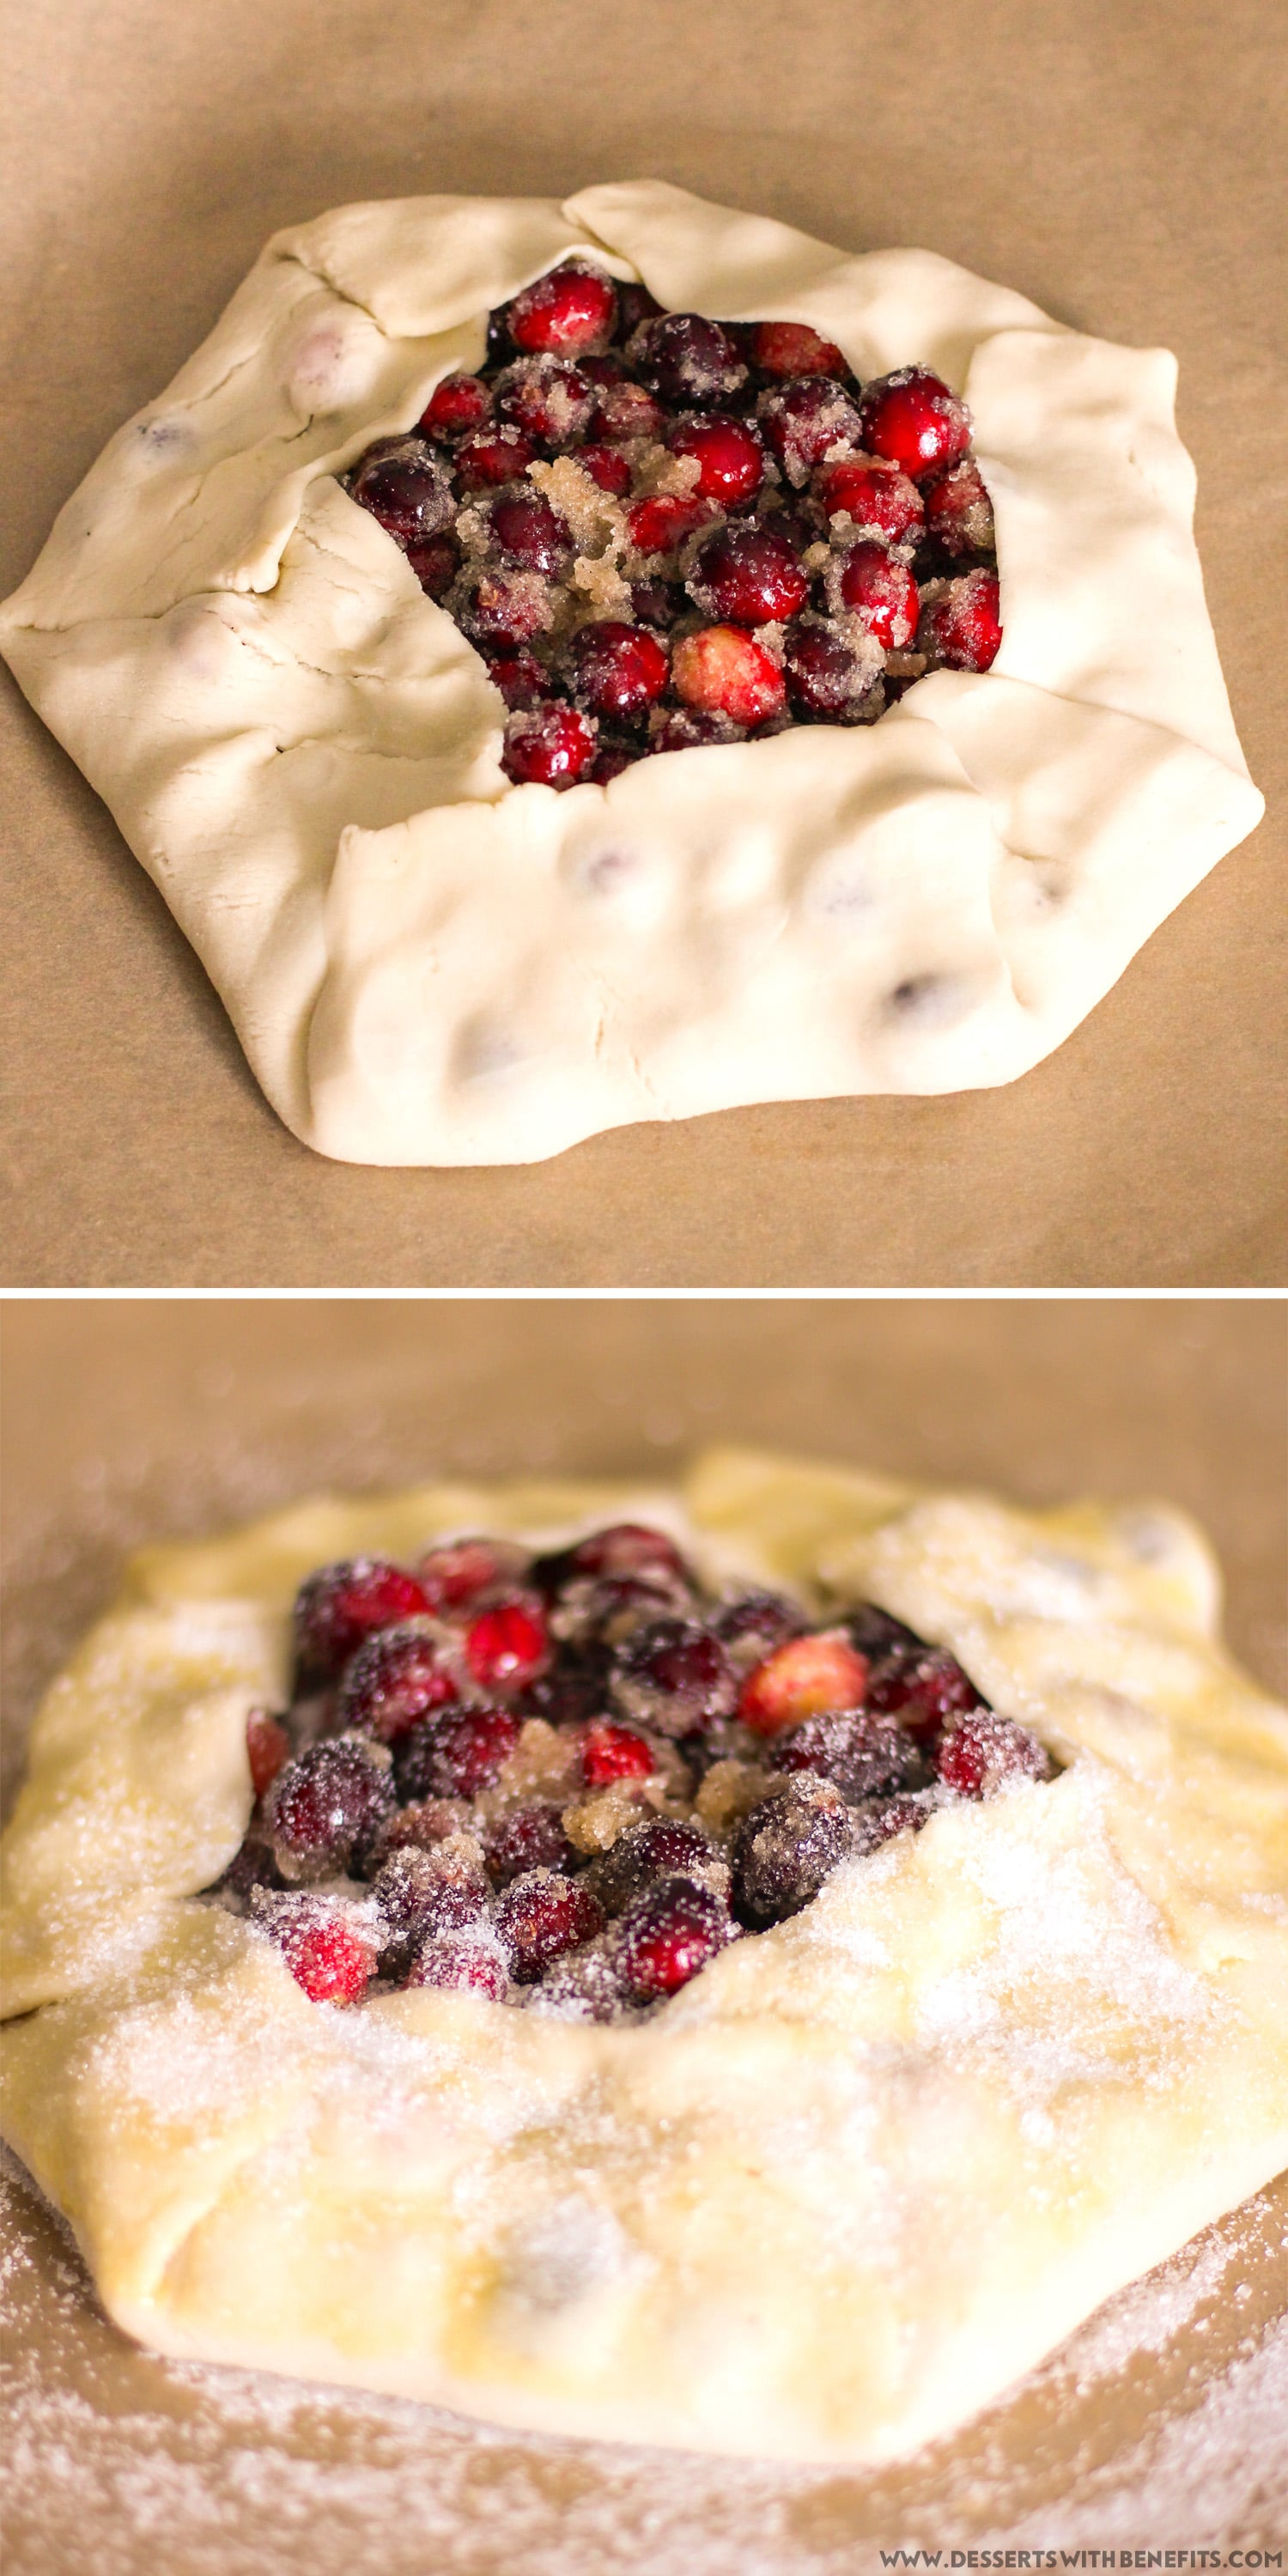 How to Make the World's EASIEST Galette! Quick and Lazy Guilt-Free Cranberry Galette Recipe (low calorie, low fat, low sugar) - Healthy Dessert Recipes at Desserts with Benefits